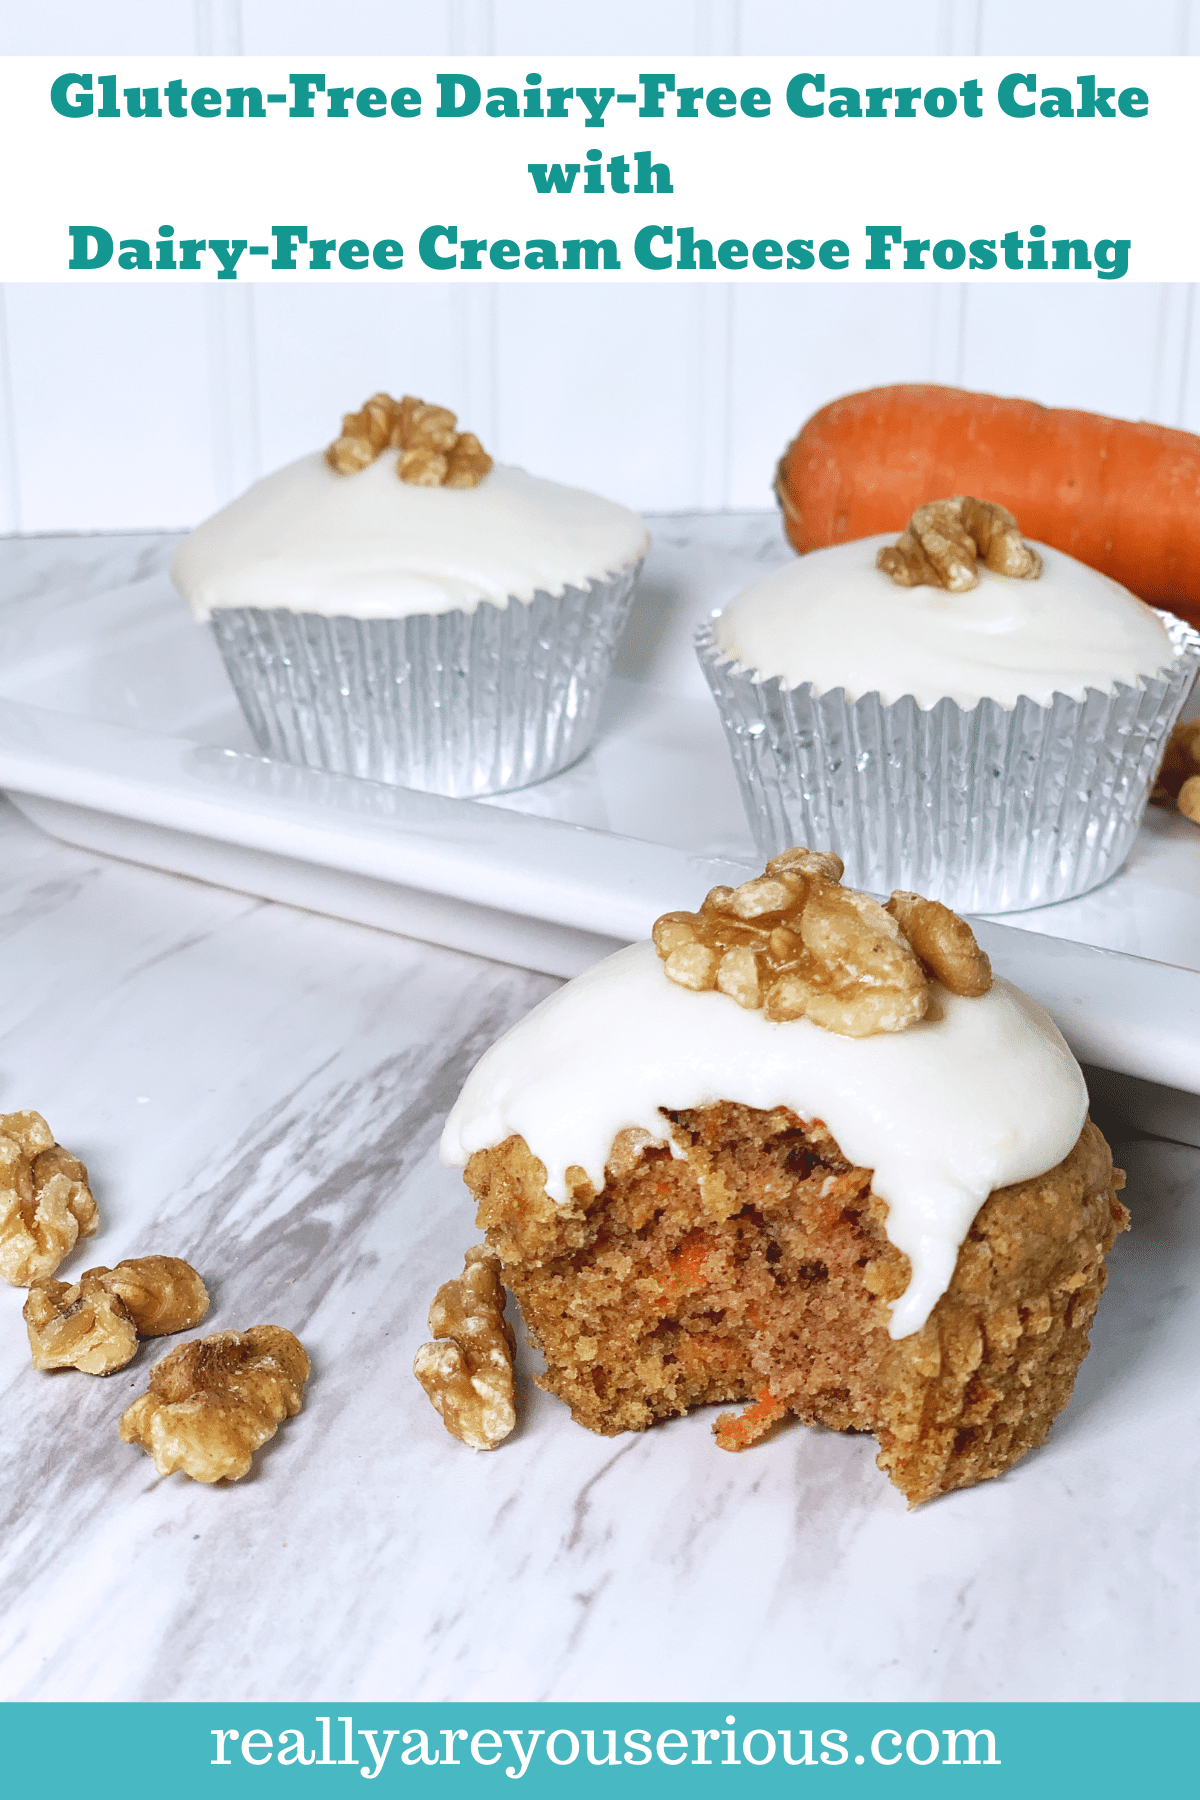 Gluten free dairy free carrot cake cupcake with dairy free cream cheese frosting